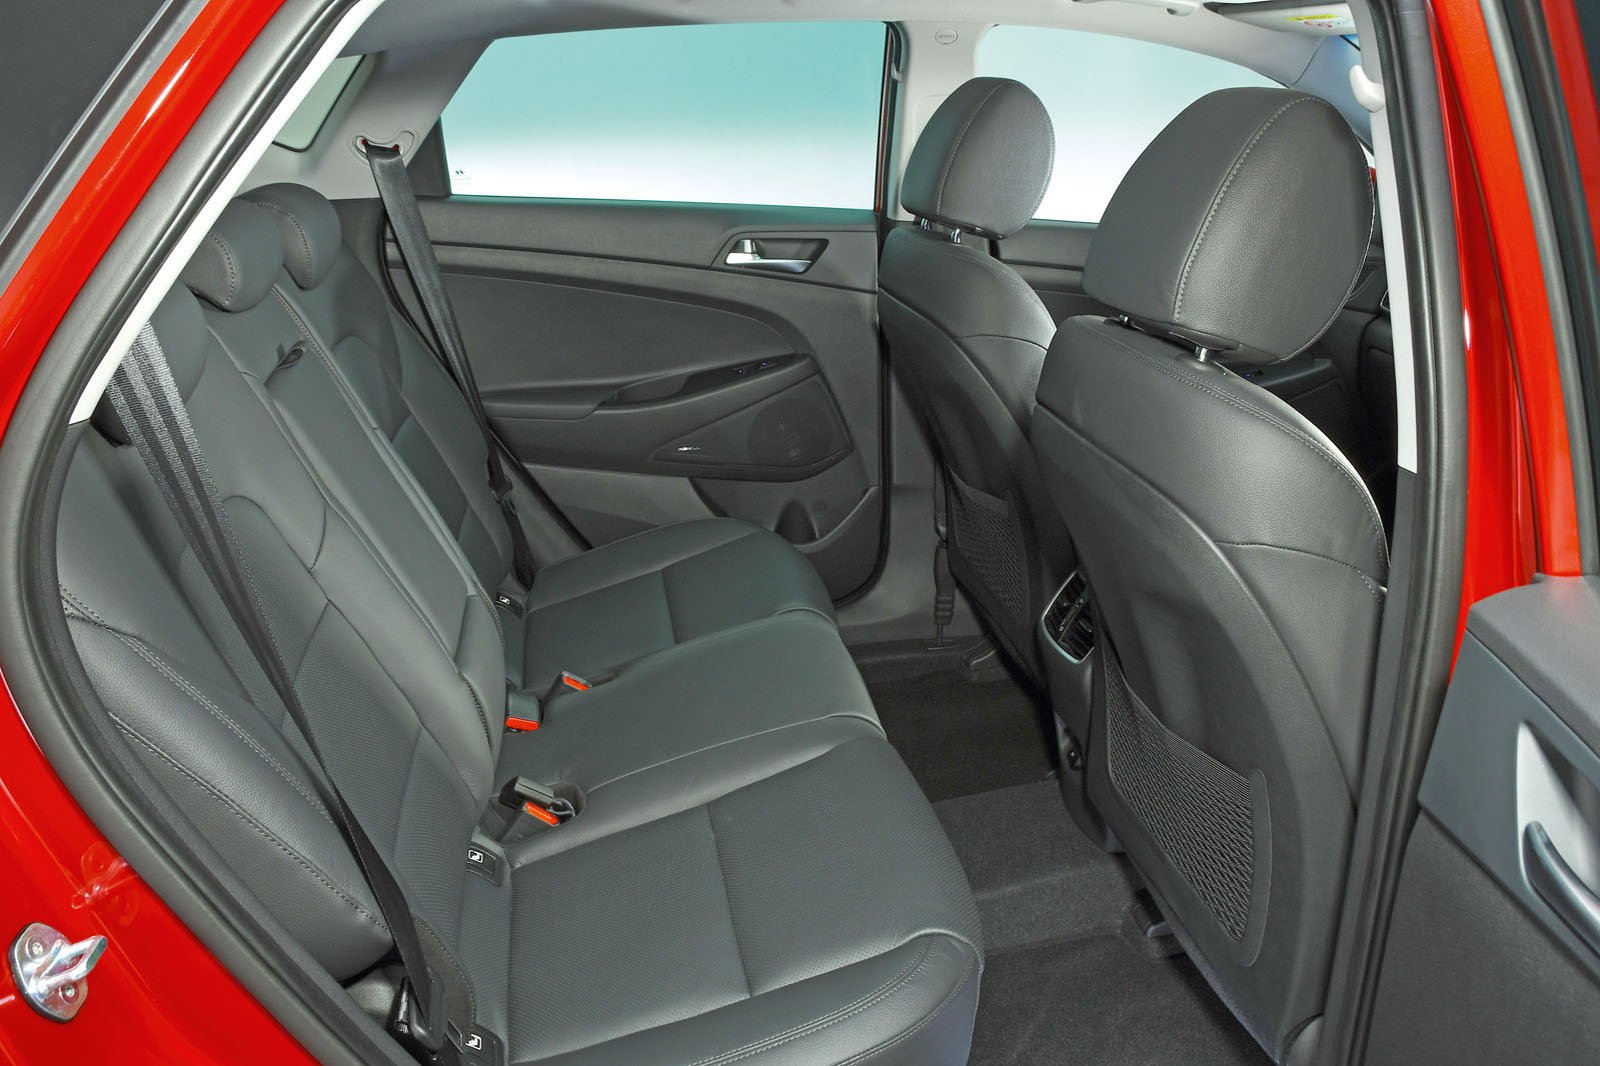 Hyundai Tucson rear seats